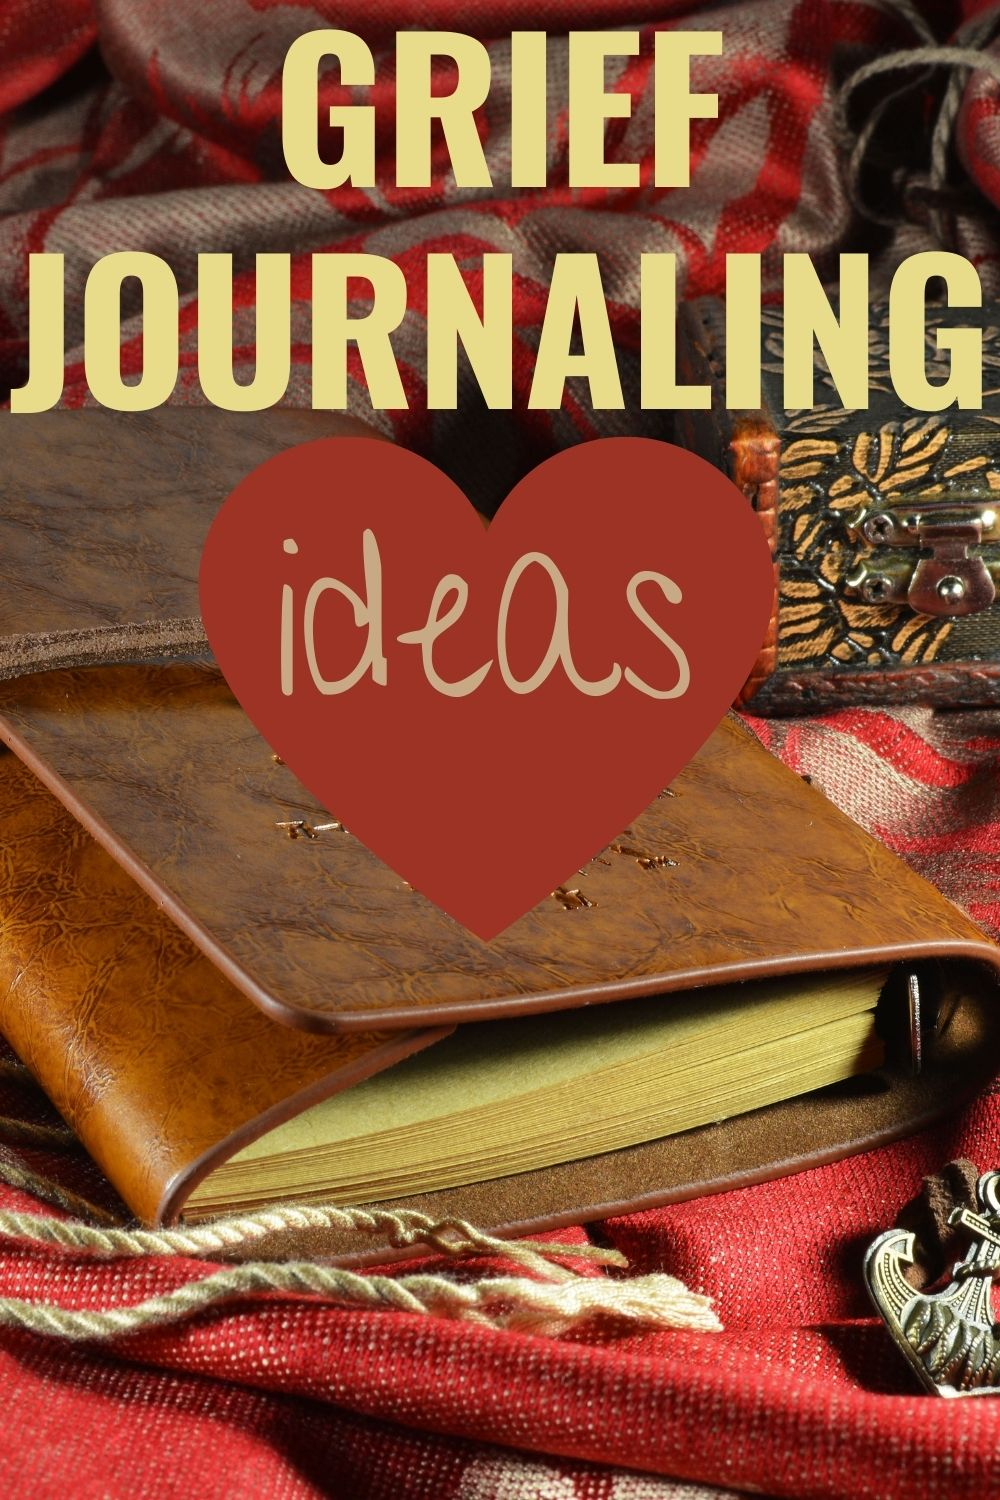 Grief journaling ideas